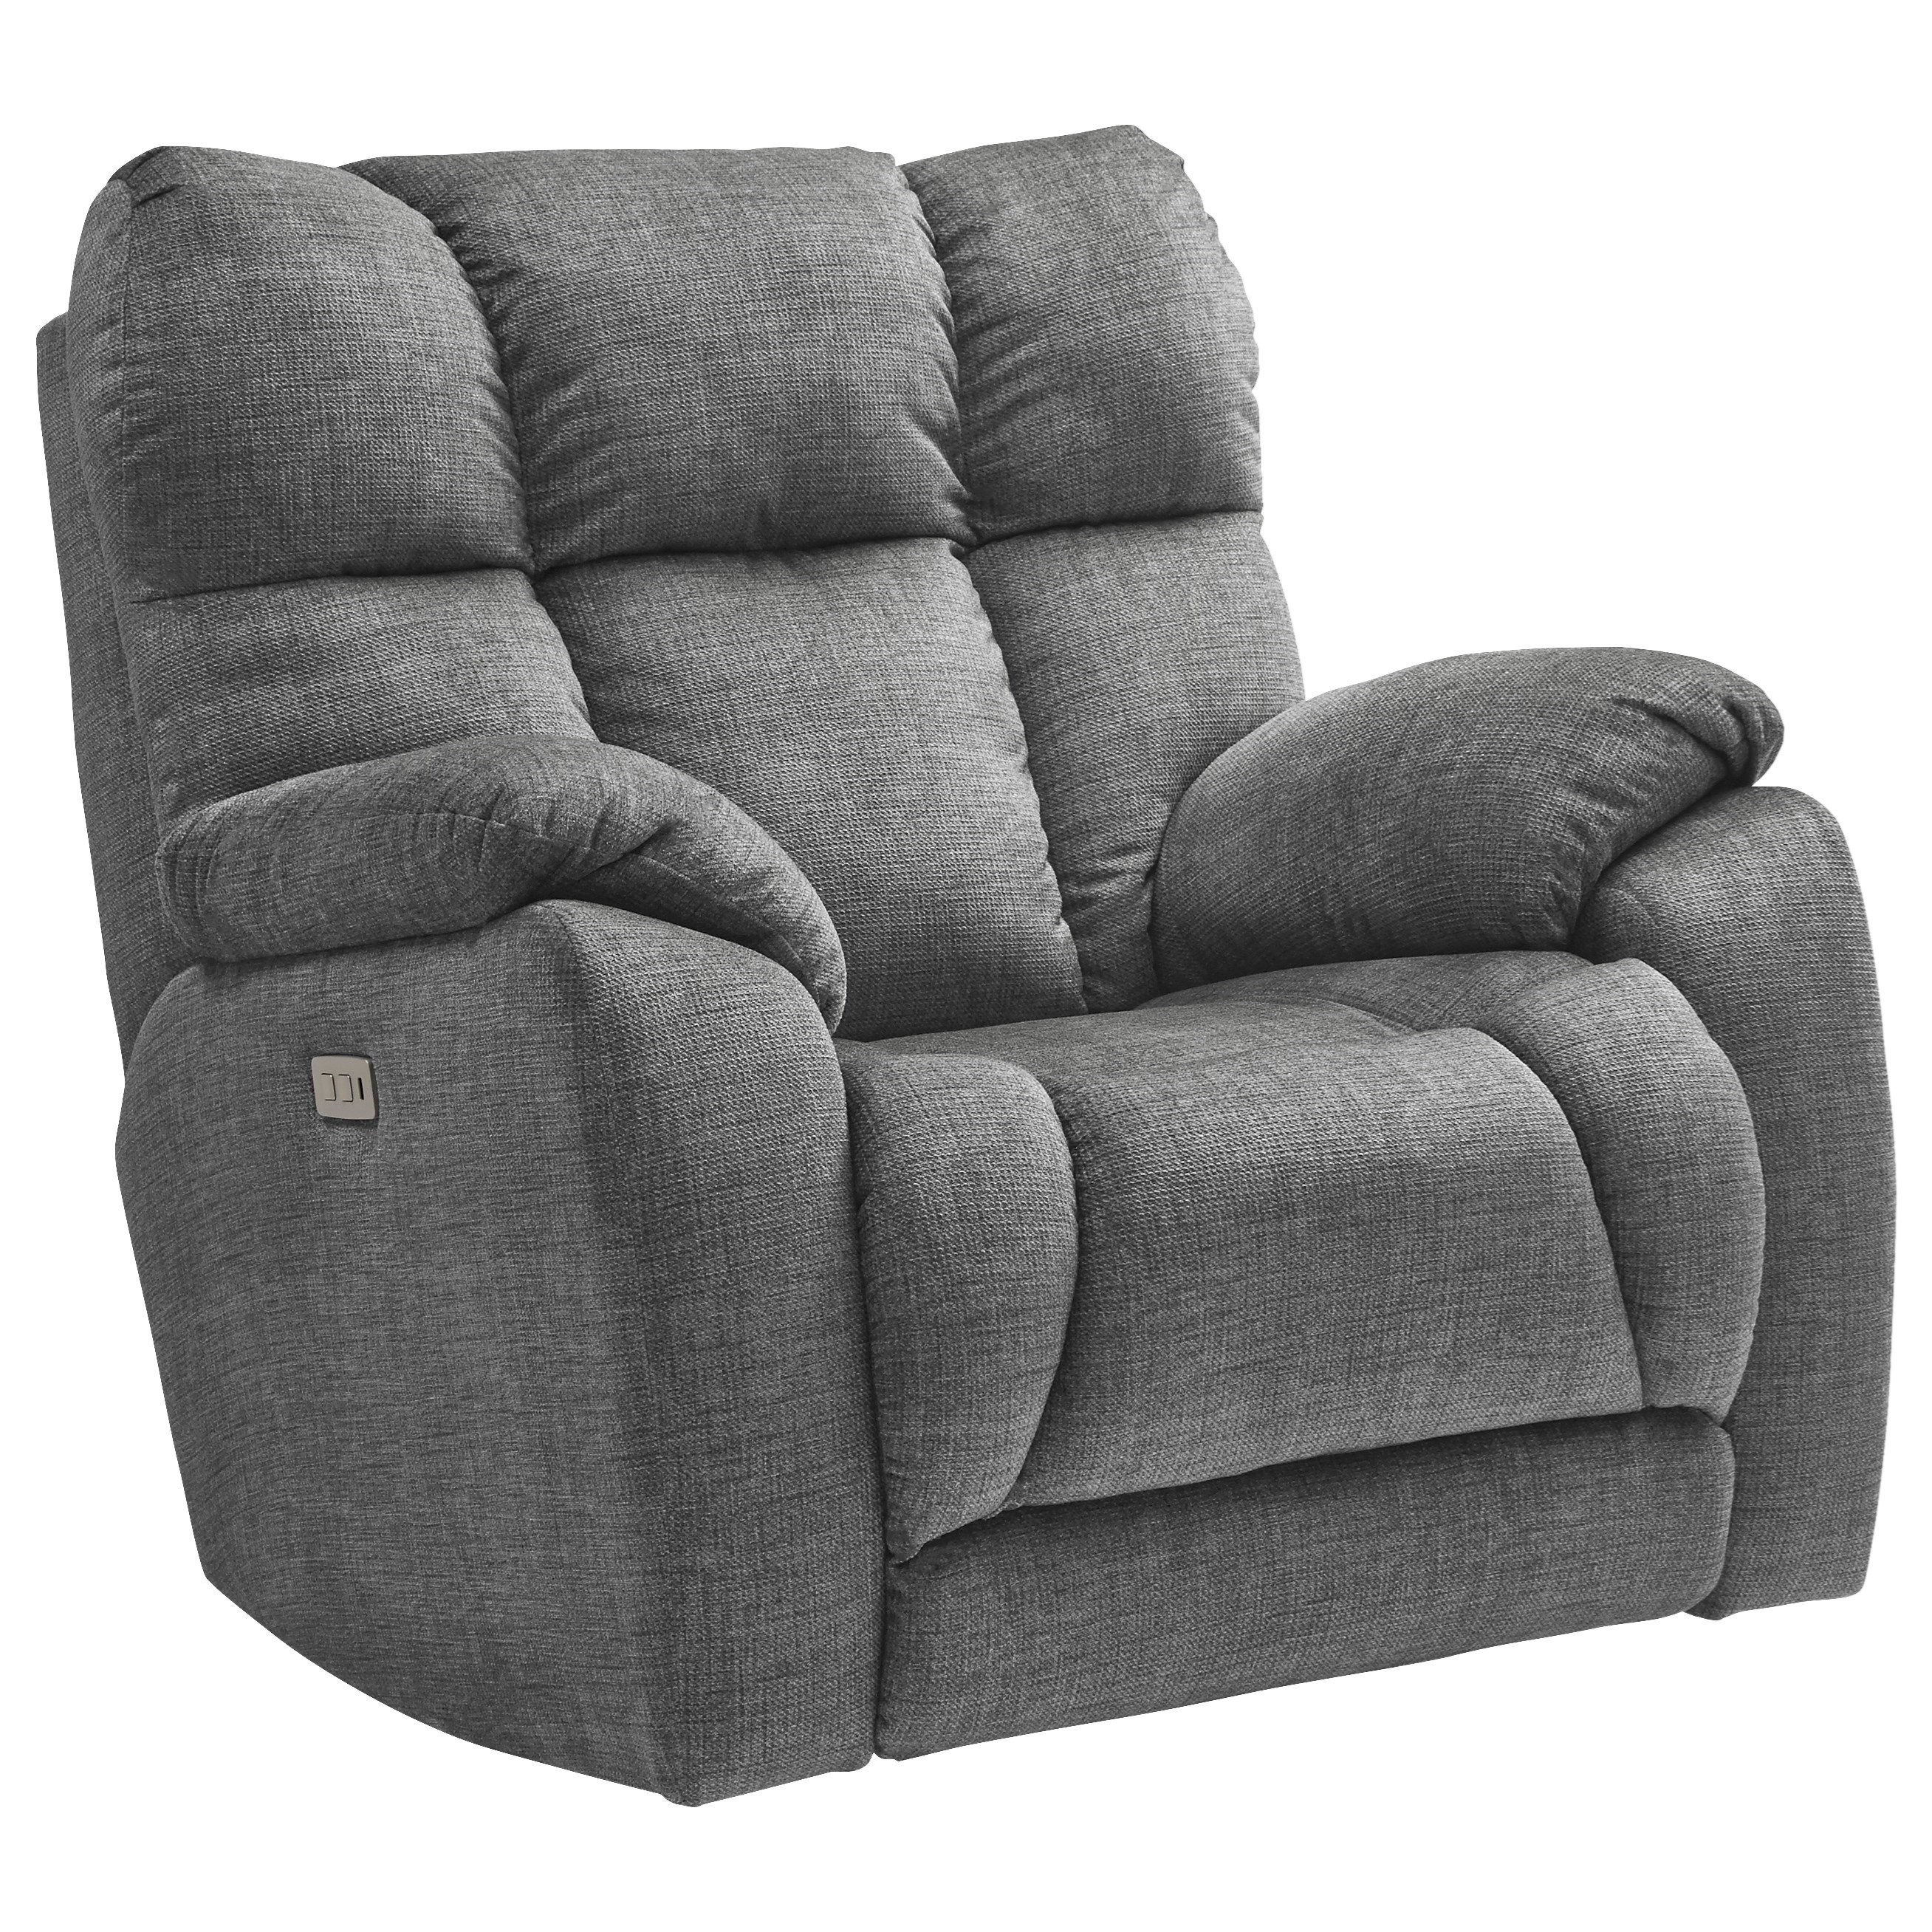 Wild Card Swivel Rocker Recliner by Southern Motion at Bullard Furniture